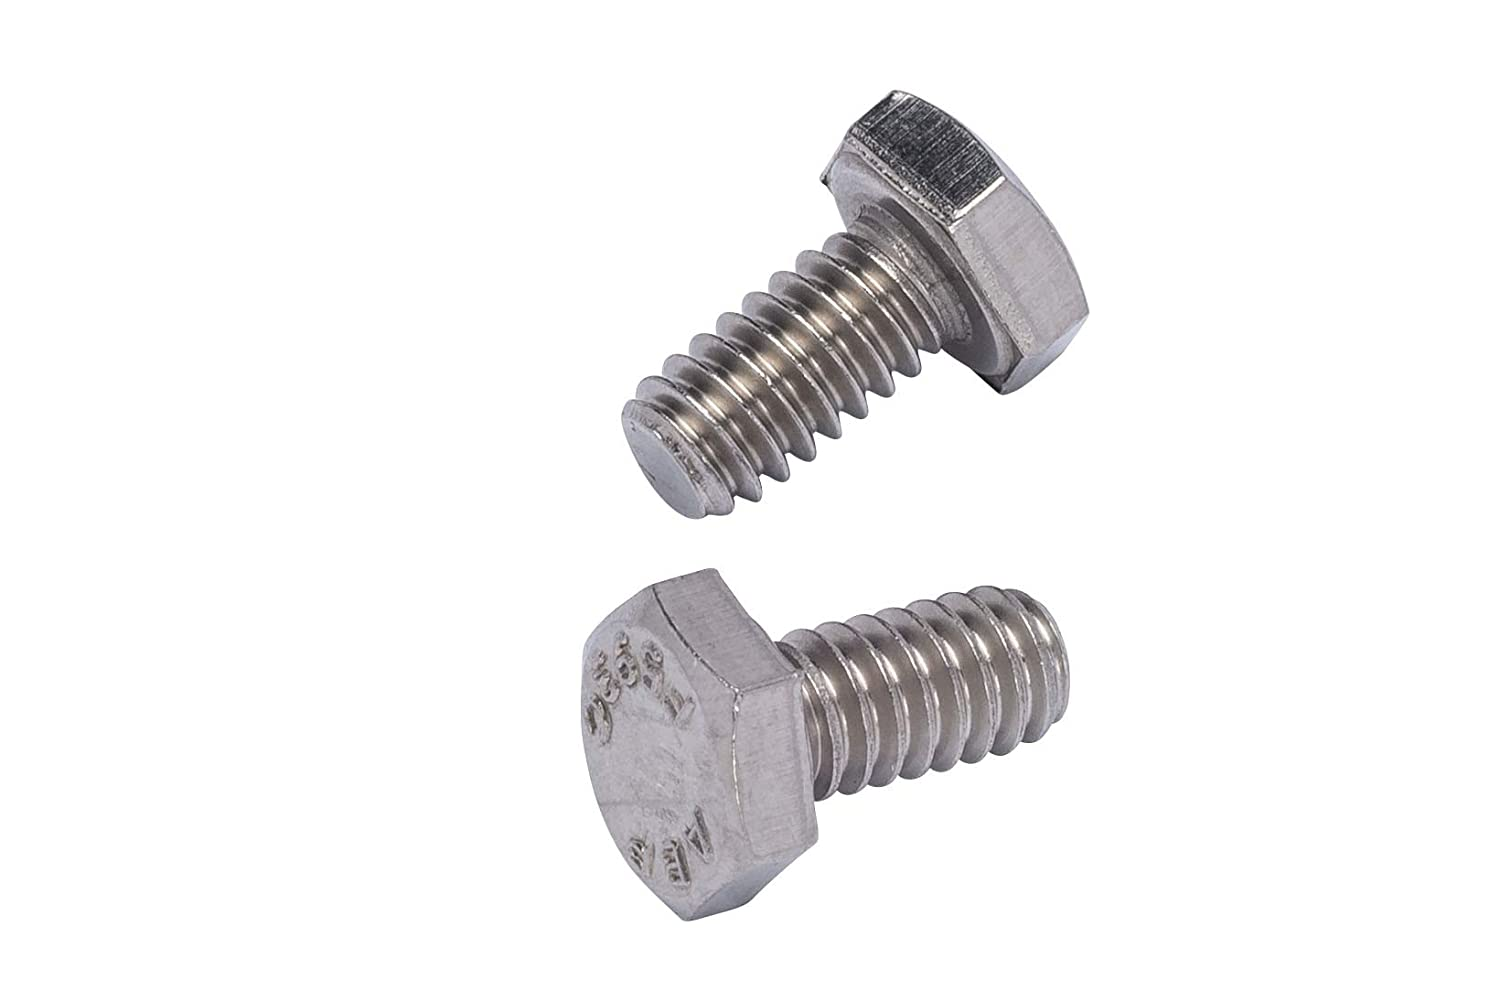 3//8-16 X 1-1//8 25pc Stainless Hex Head Bolt 18-8 Stainless Steel